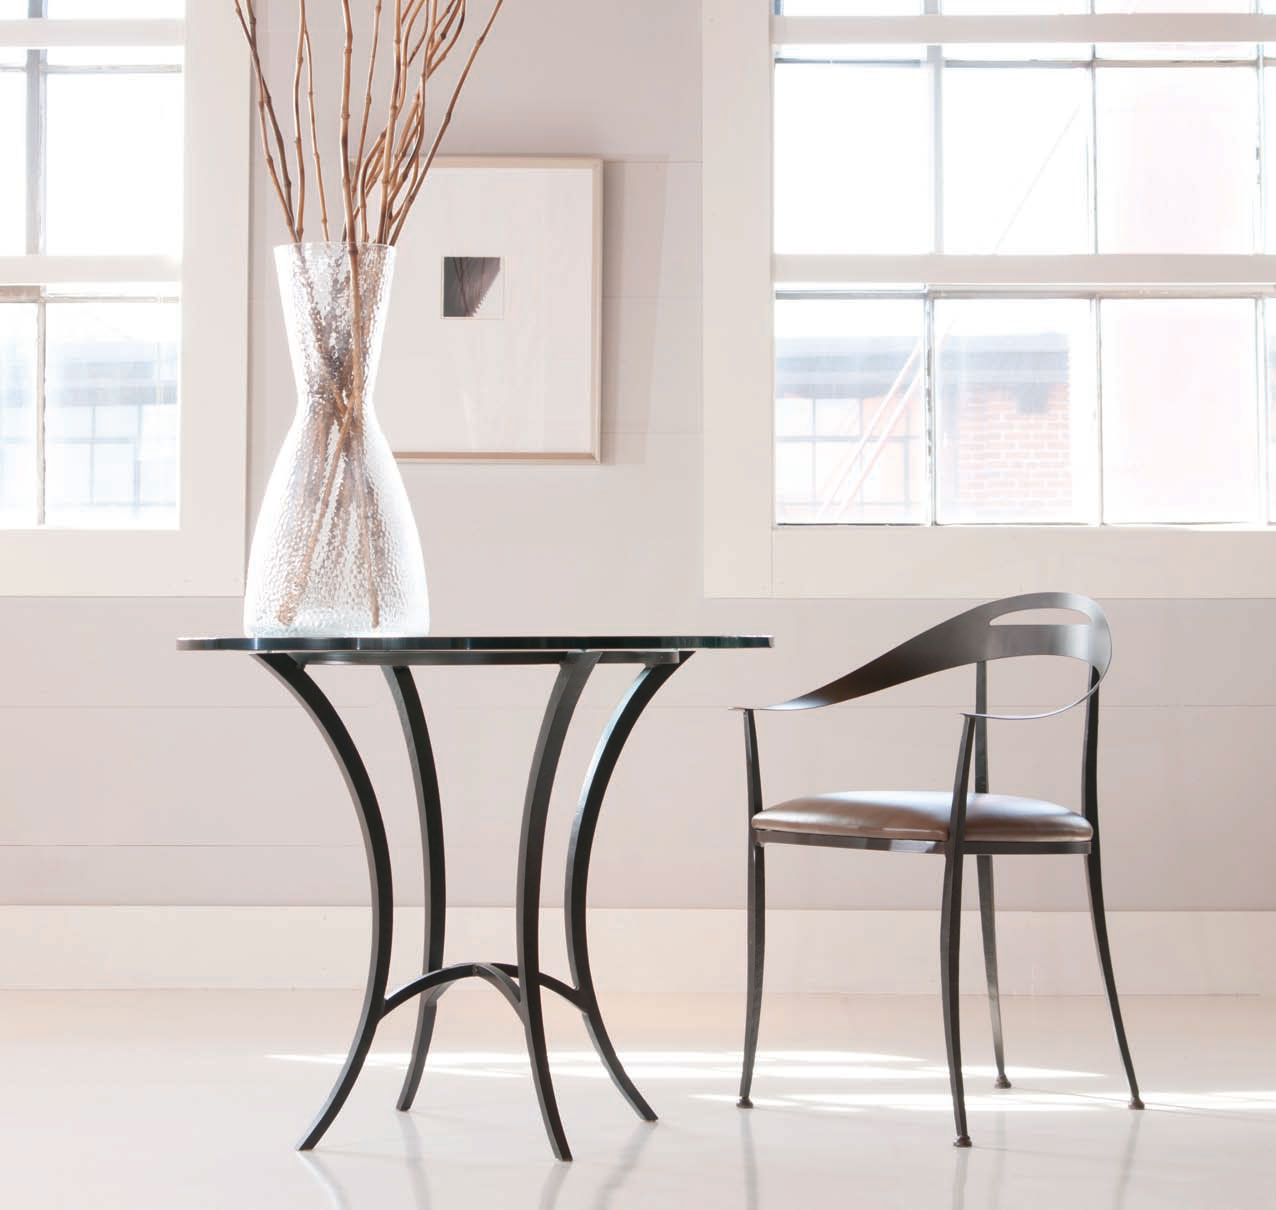 Rod Iron Kitchen Tables Wrought Iron Dining Tables 30 Unique Handcrafted Styles